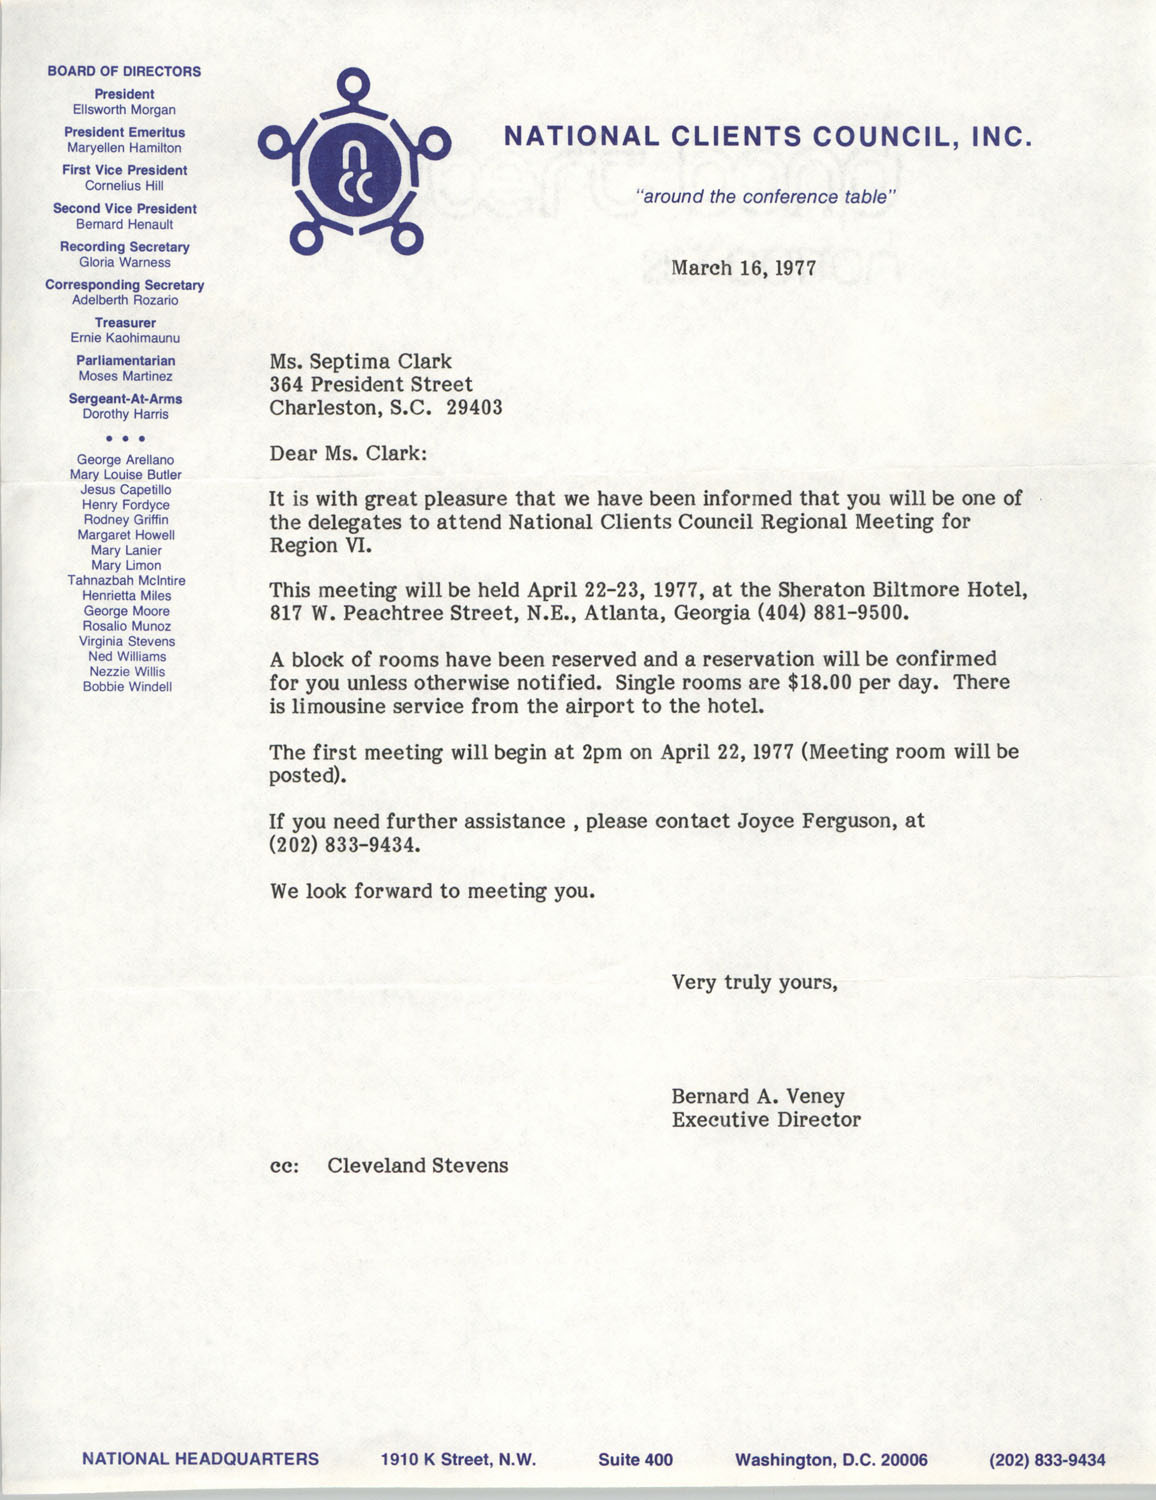 Letter from Bernard A. Veney to Septima P. Clark, March 16, 1977